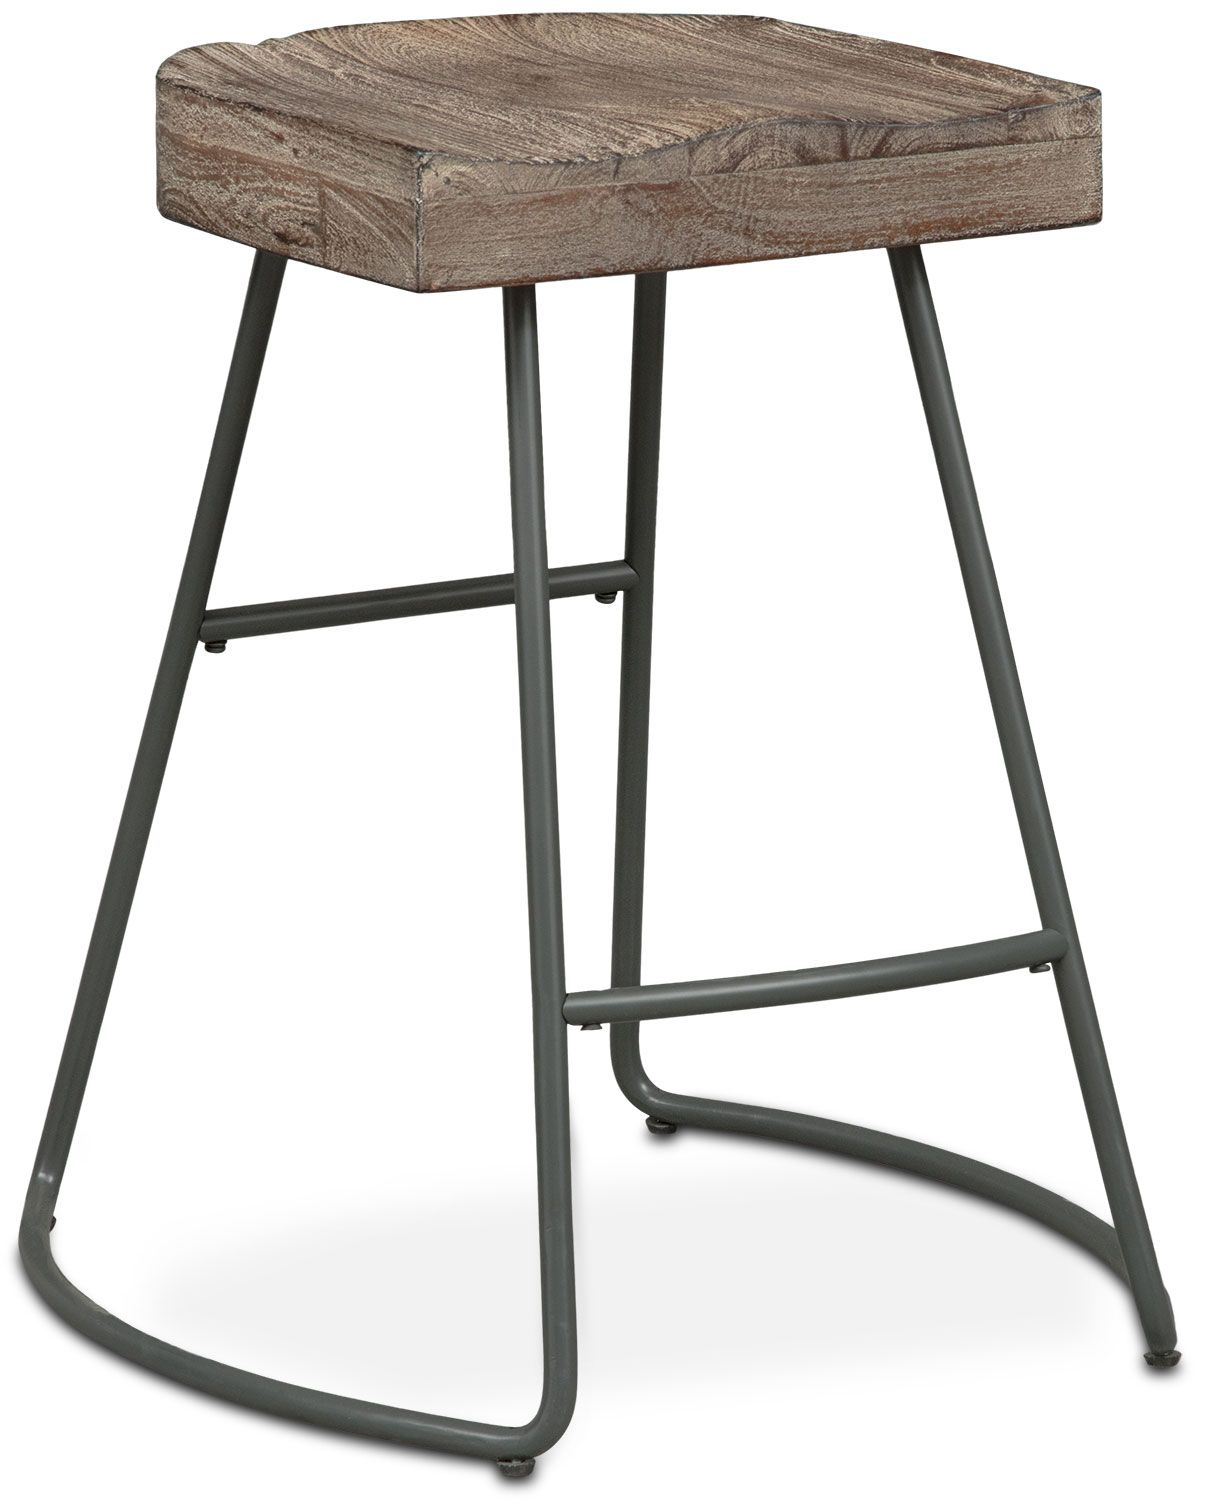 Western Cool. Jump on the saddle seat and enjoy fine living with the Foundry counter-height stool. This unique seating features round jet black steel tube legs contrasting with a dark-finished top, constructed of solid acacia and oak wood. Customer assembly required.